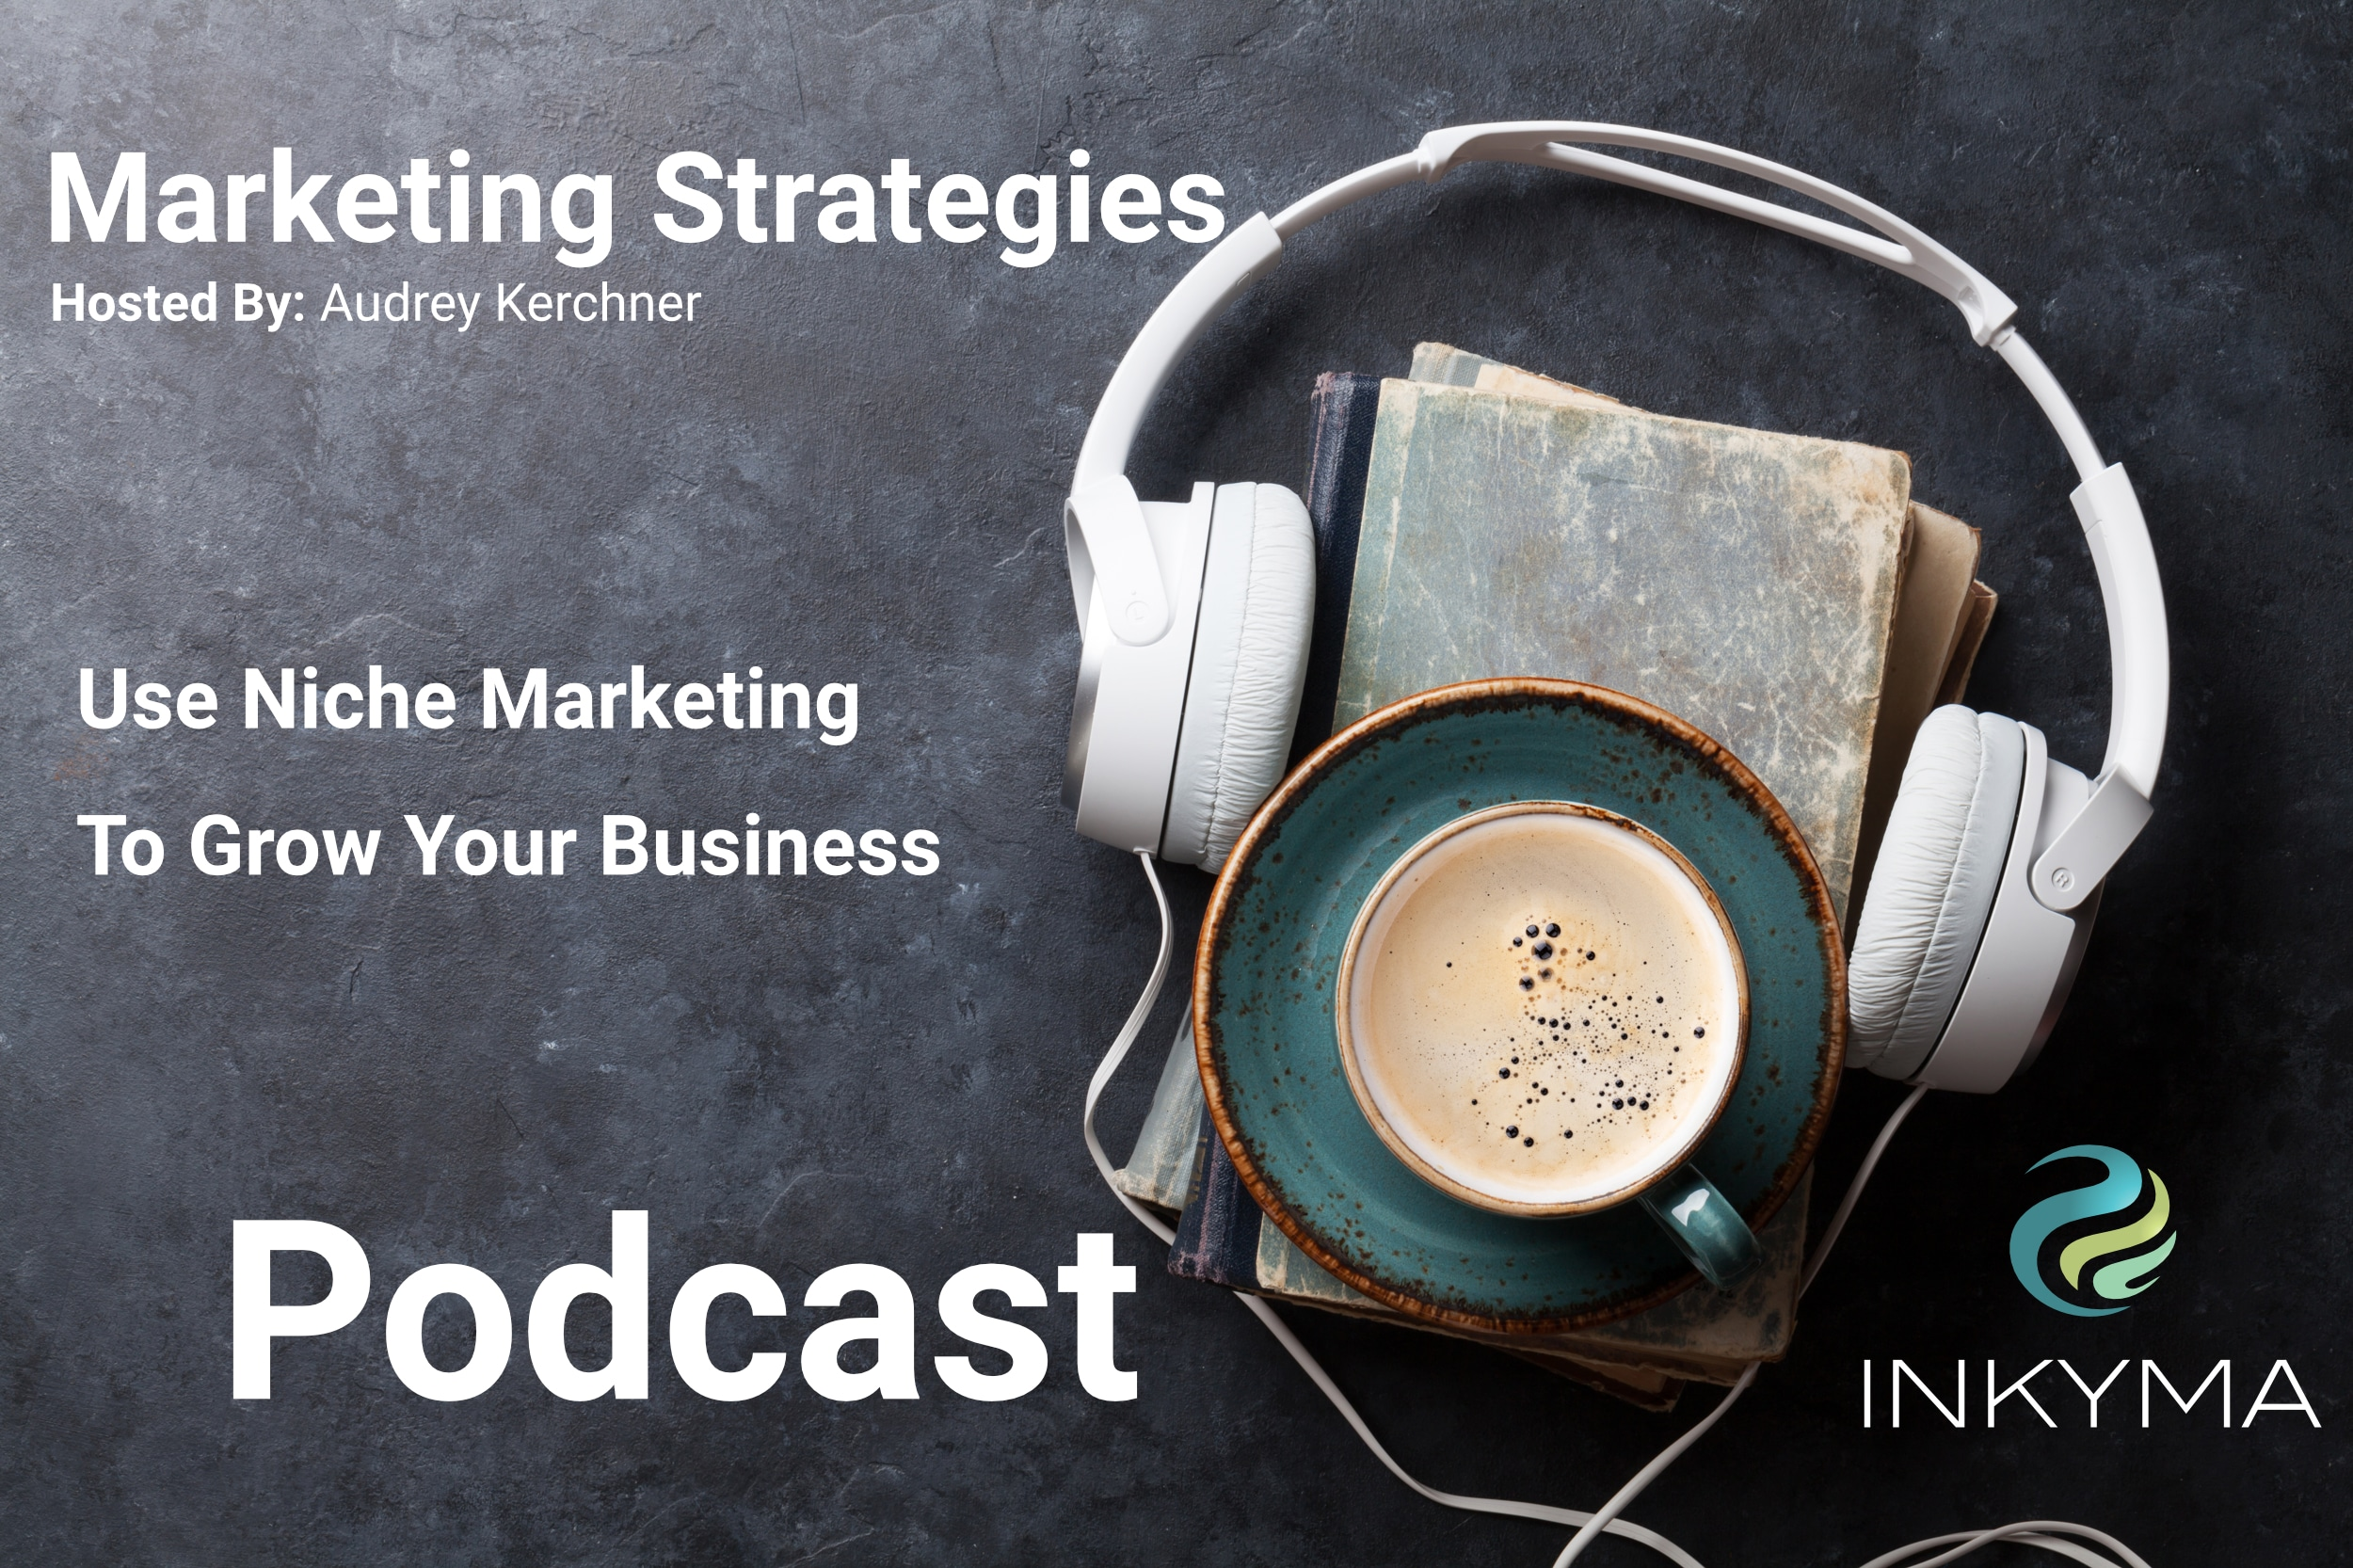 use niche marketing to grow your business